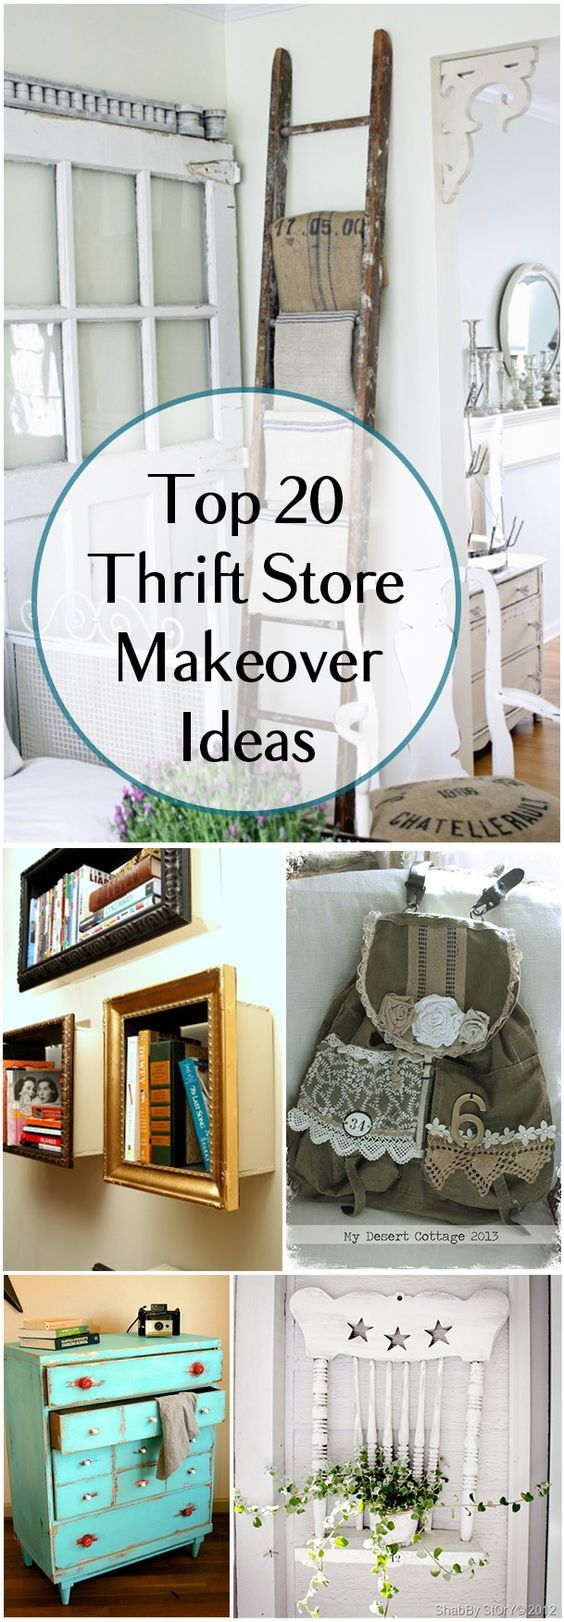 1000 Images About Thrifting The Goodwill Way On Pinterest